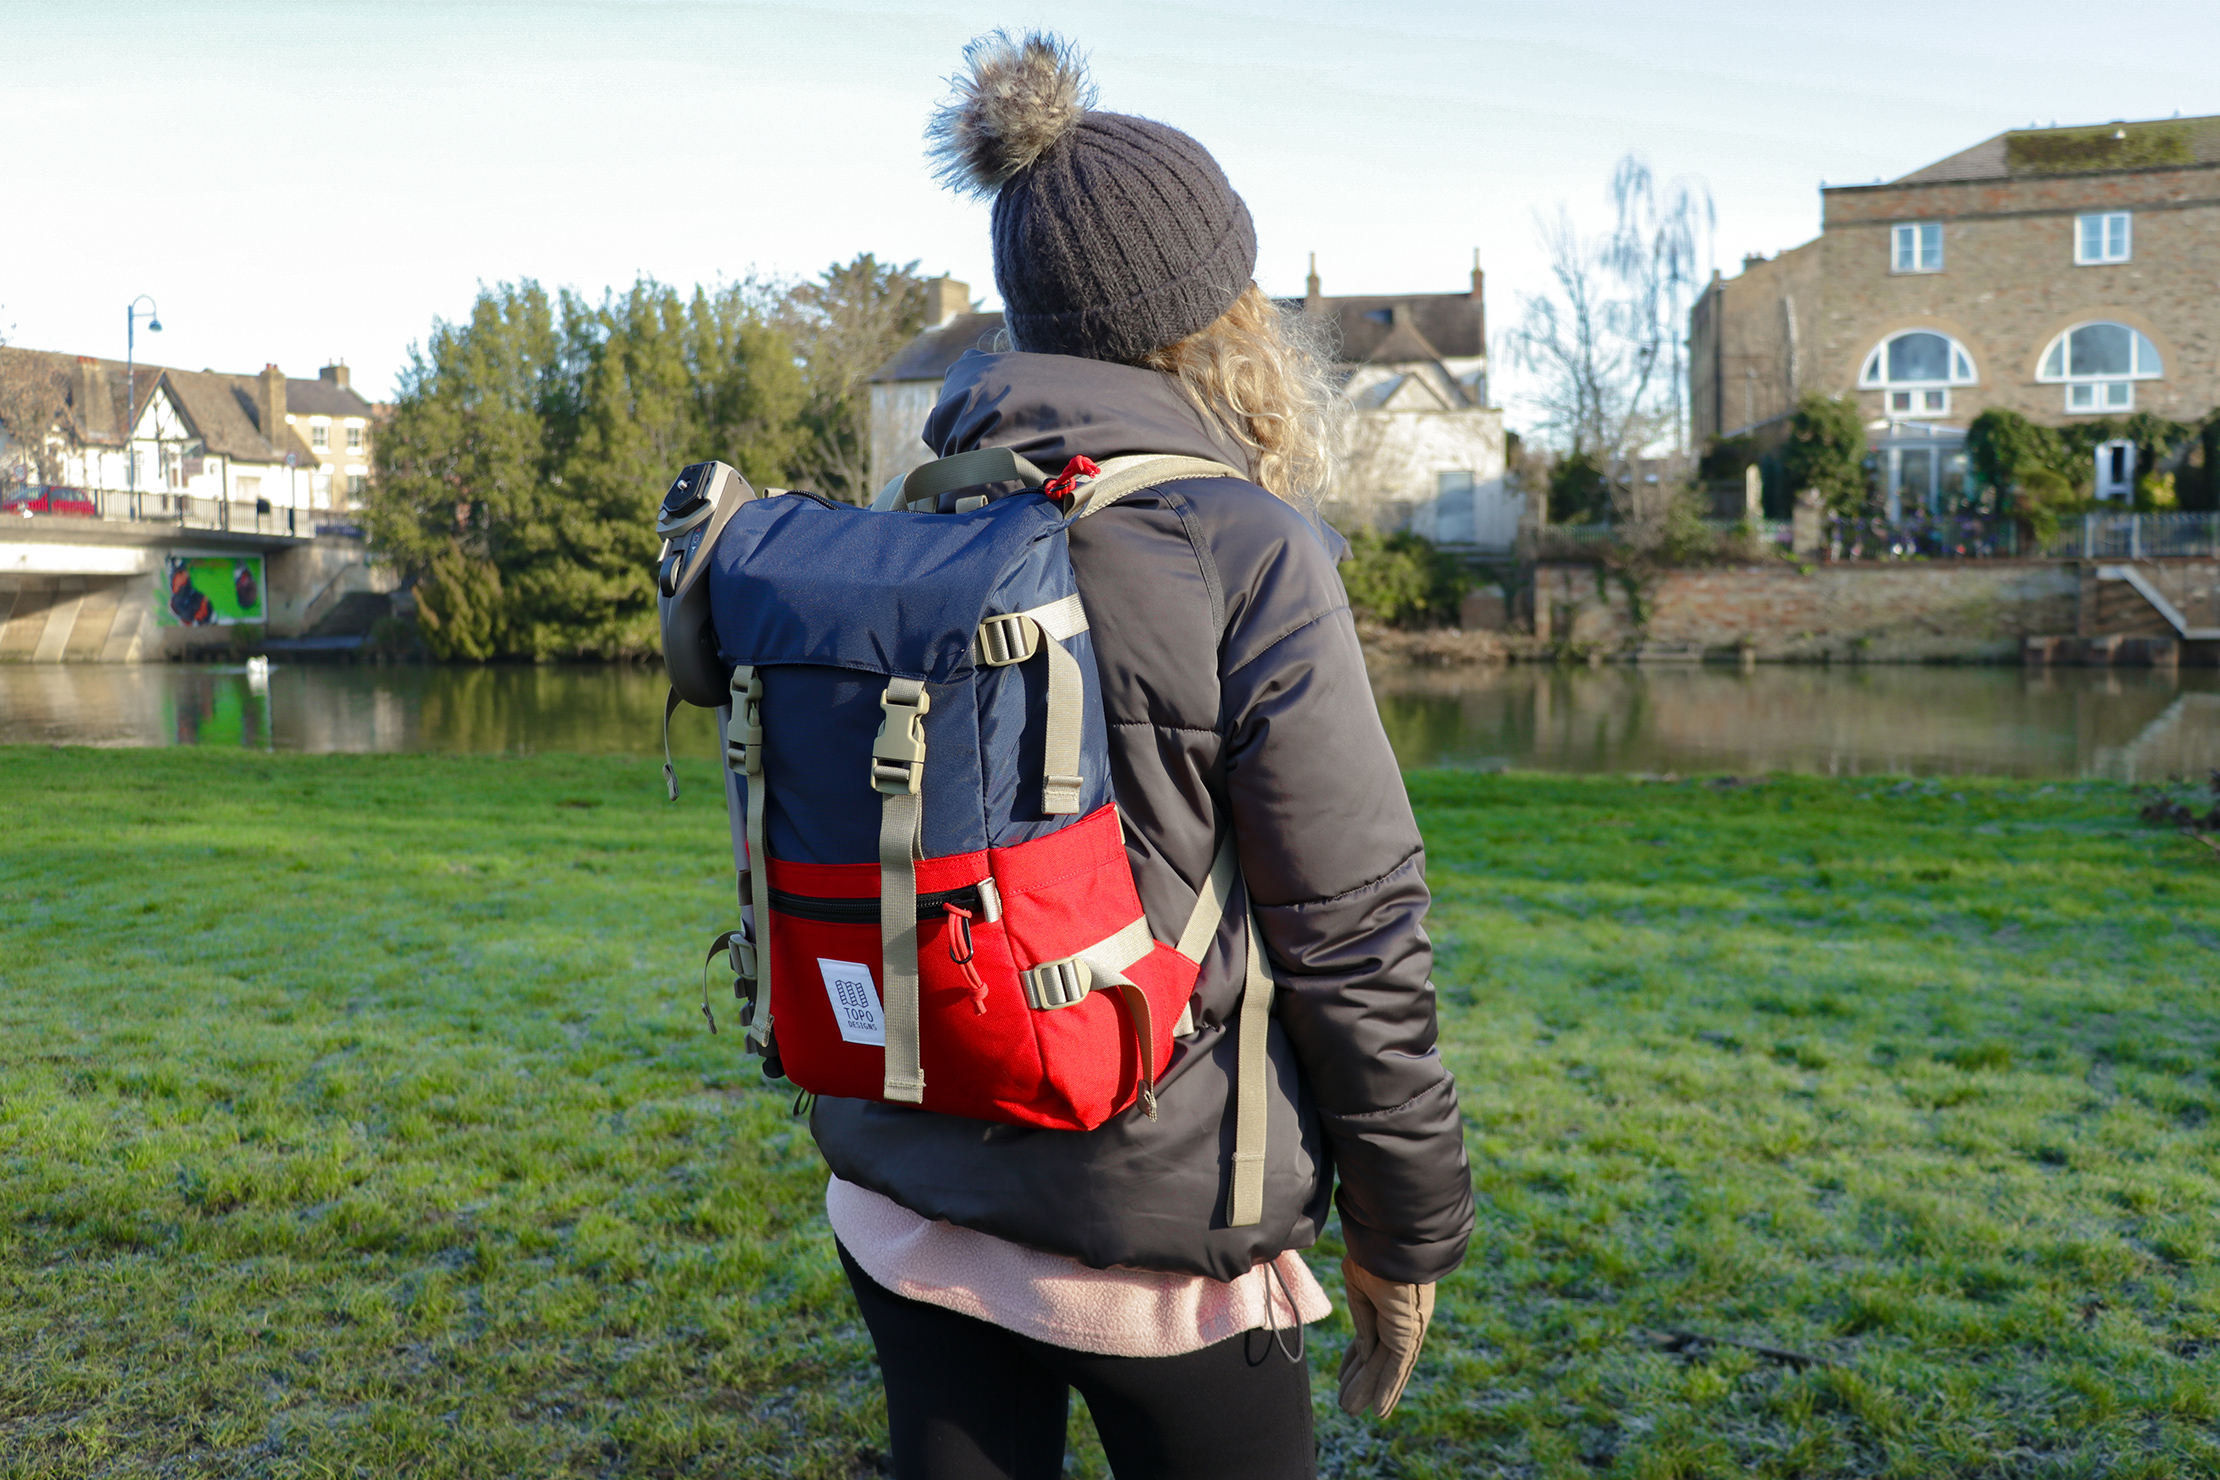 Topo Designs Rover Pack Classic | The two-tone design makes it pop out from the scenery